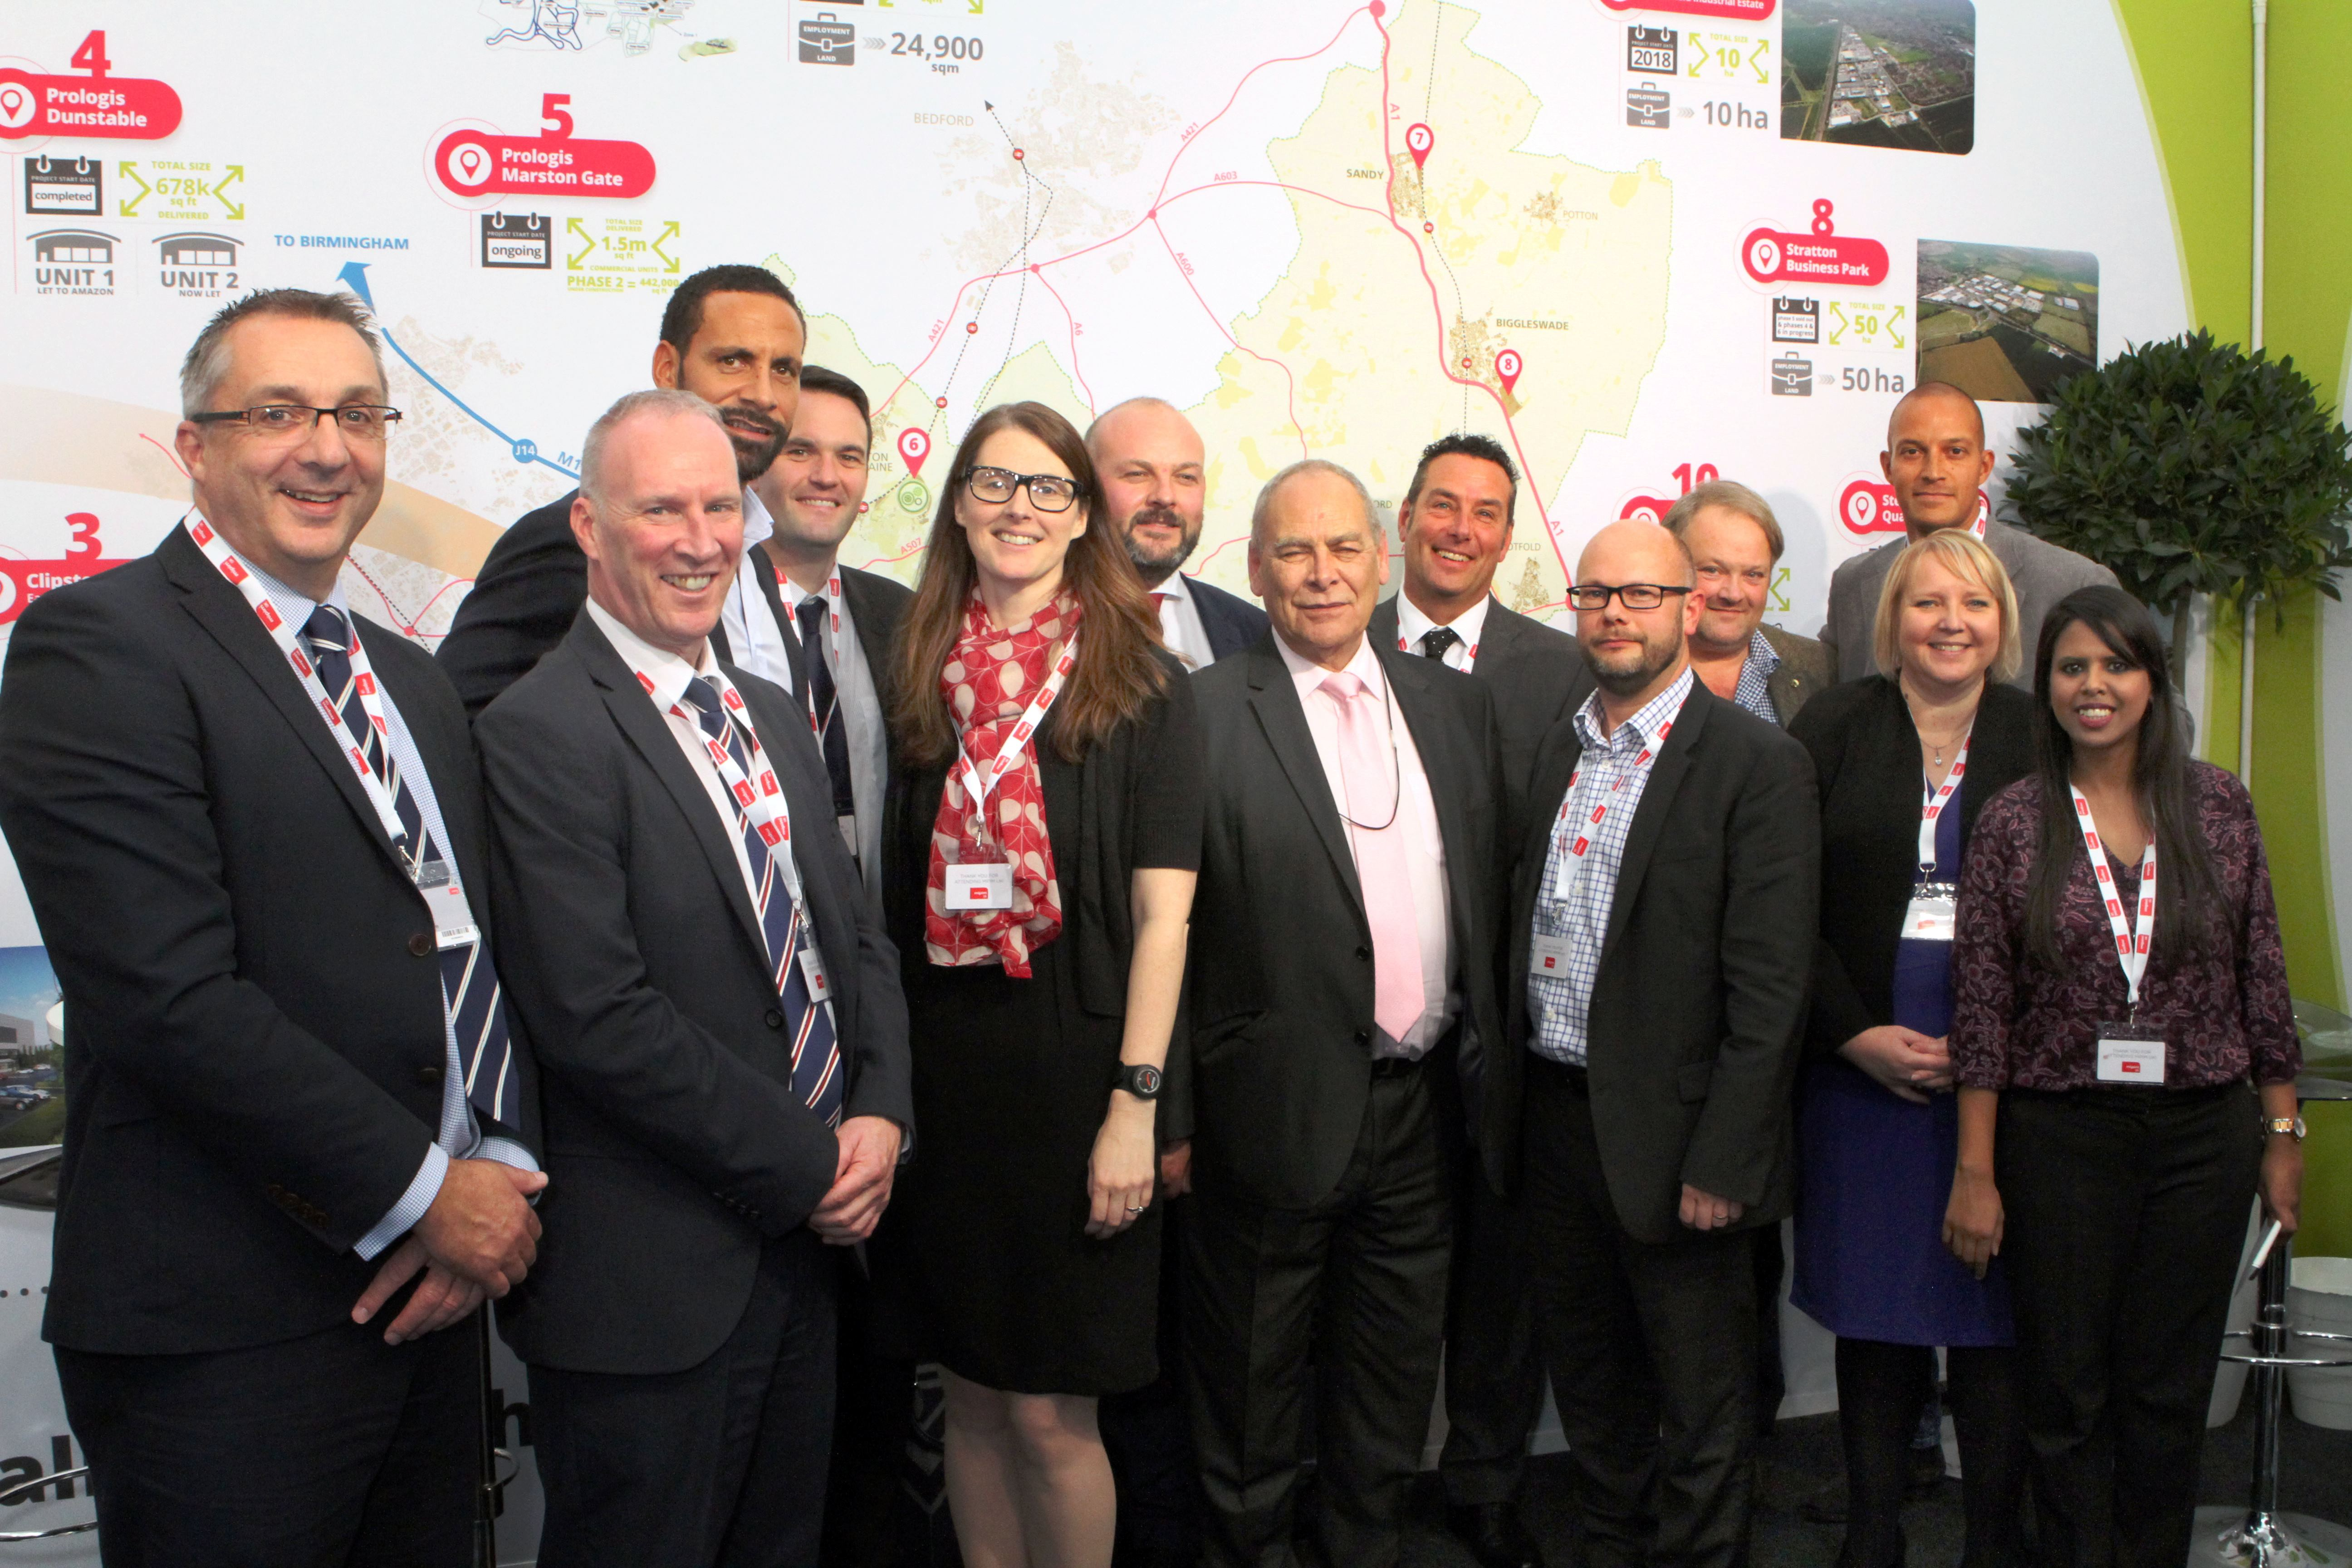 Be Central Bedfordshire makes its mark yet again at MIPIM this year!